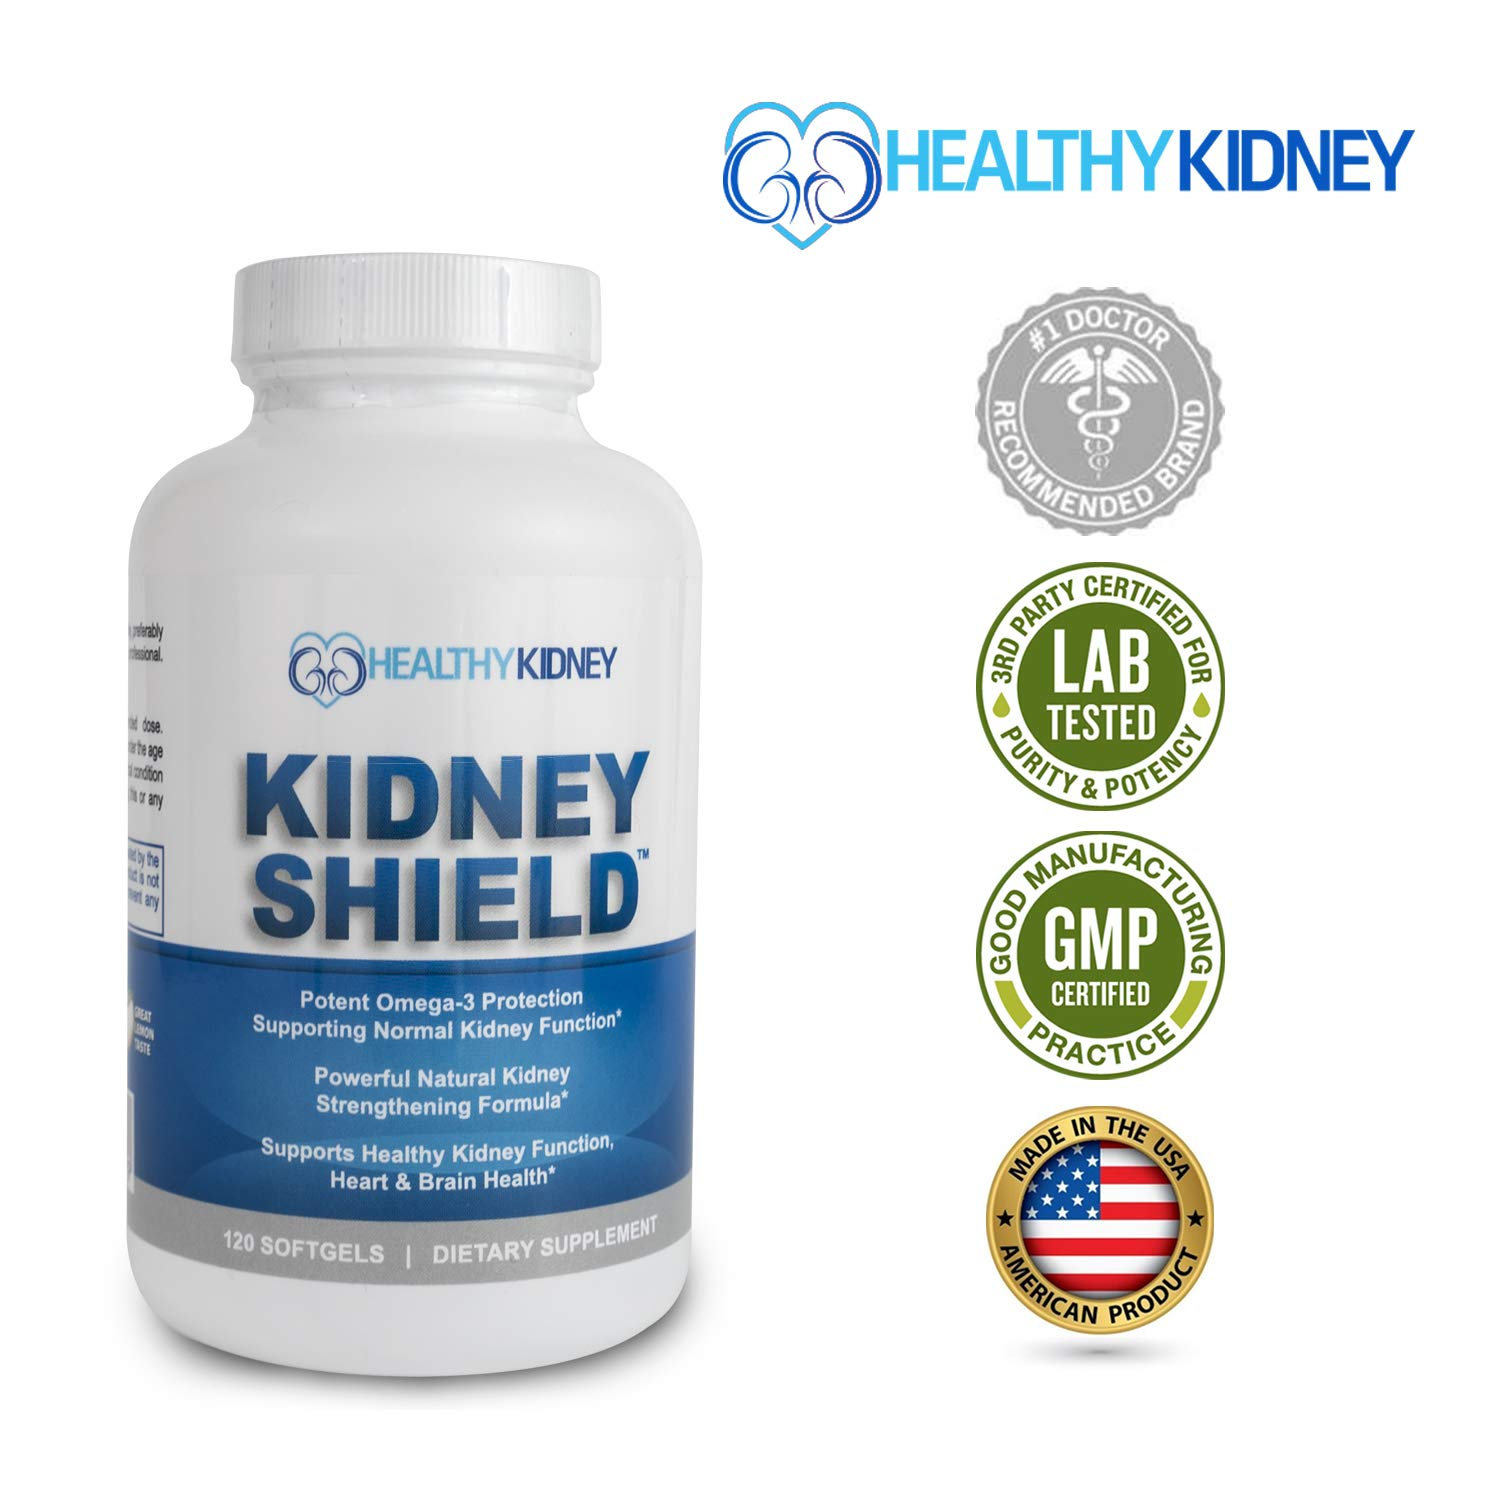 Best Kidney Supplement to Protect and Support Kidney Function, Creatinine, Kidney Cleanse and Support Kidney Health for Quick Renal Detox Kidney Flush Kidney Shield Omega3 by Kidney Restore